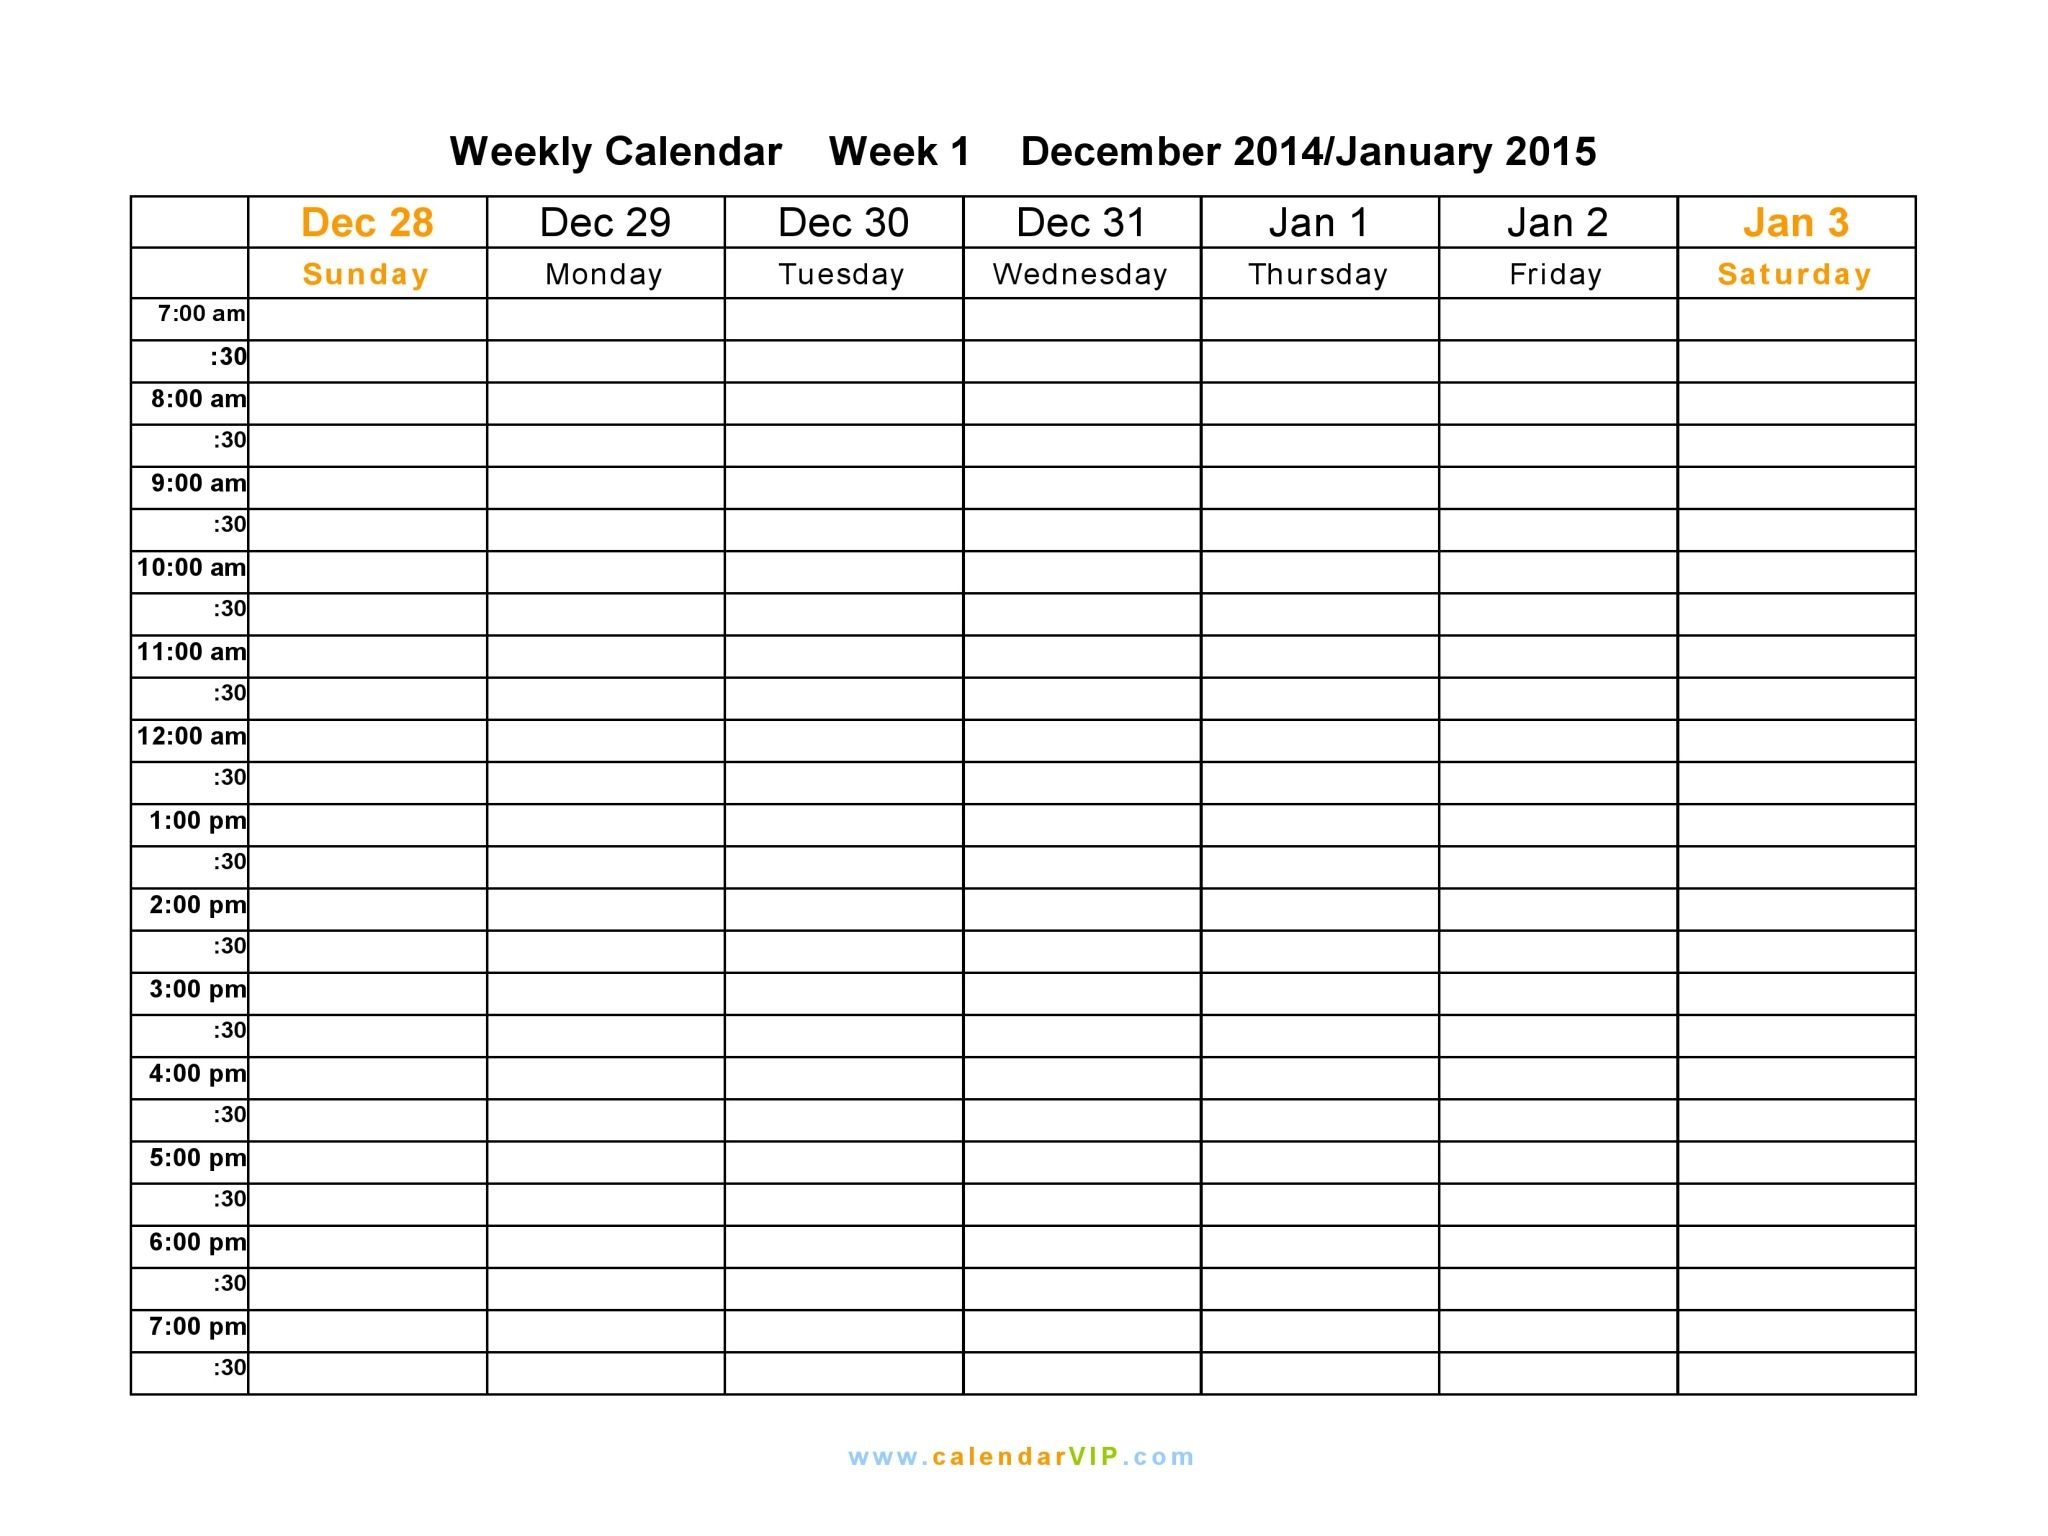 Weekly Calendar Templates Ee Microsoft Template For Word Appointment with regard to 12 Week Blank Calendar Printable